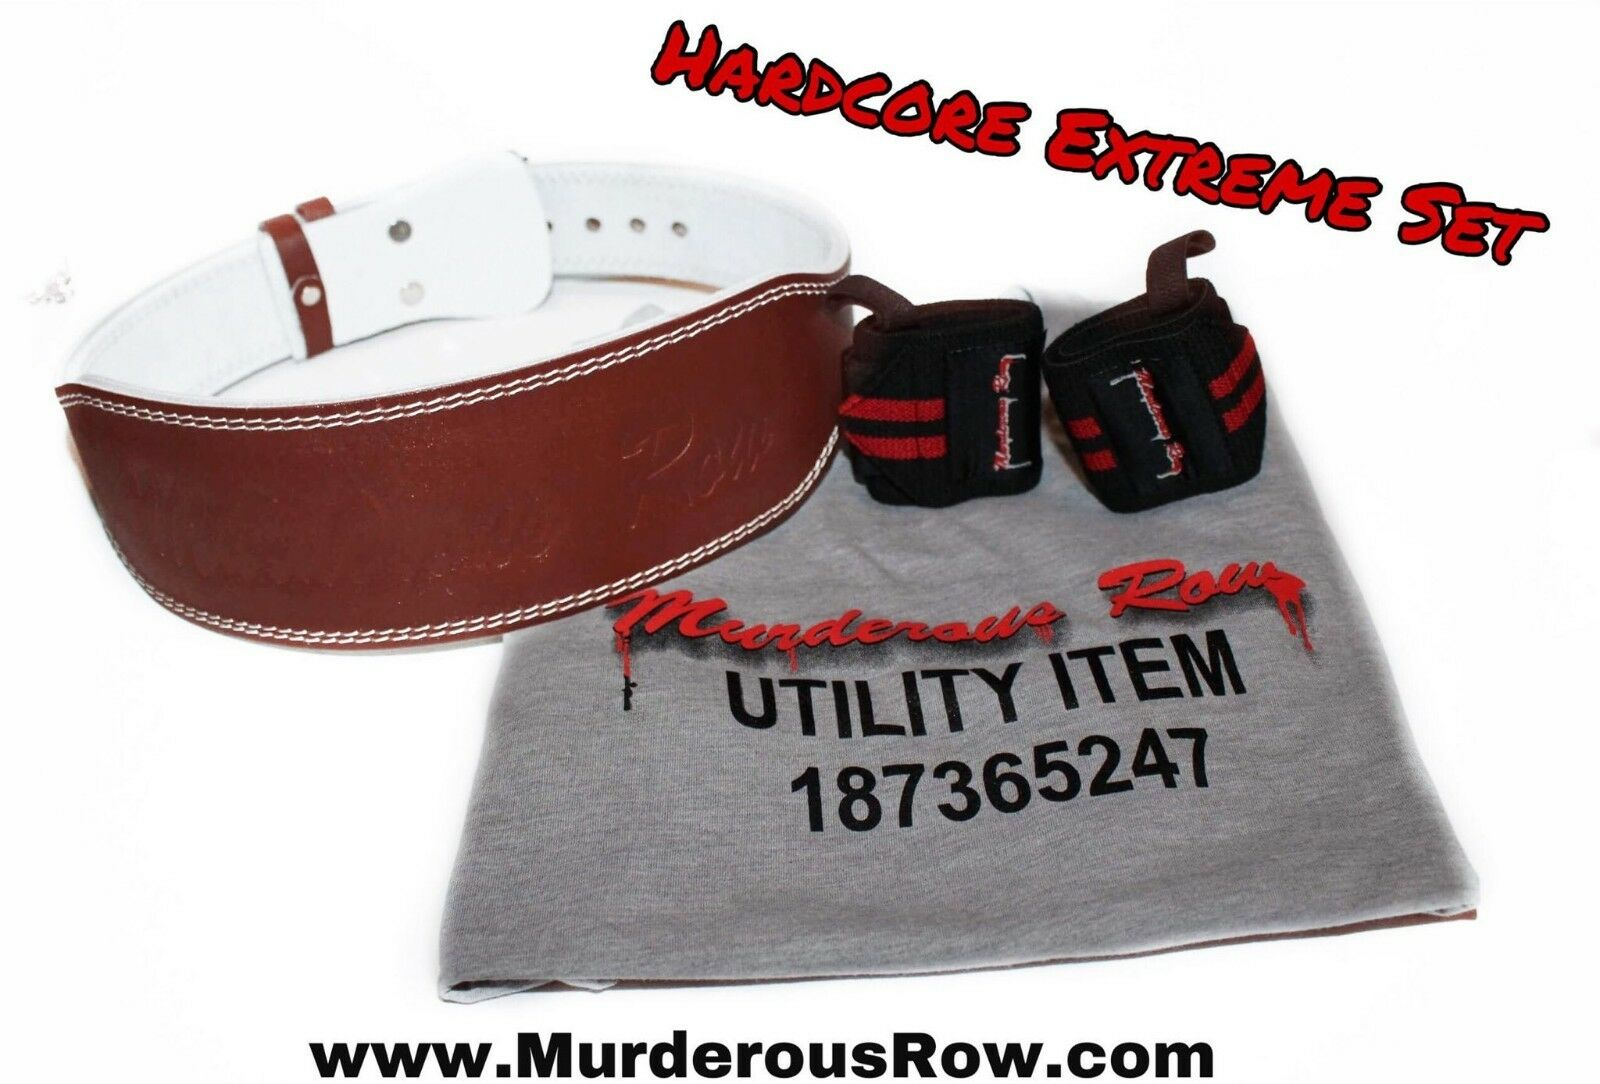 Murderous Row WeightLifting Genuine Leather Belt (MED) + Wrist Wraps  + Shirt  the cheapest